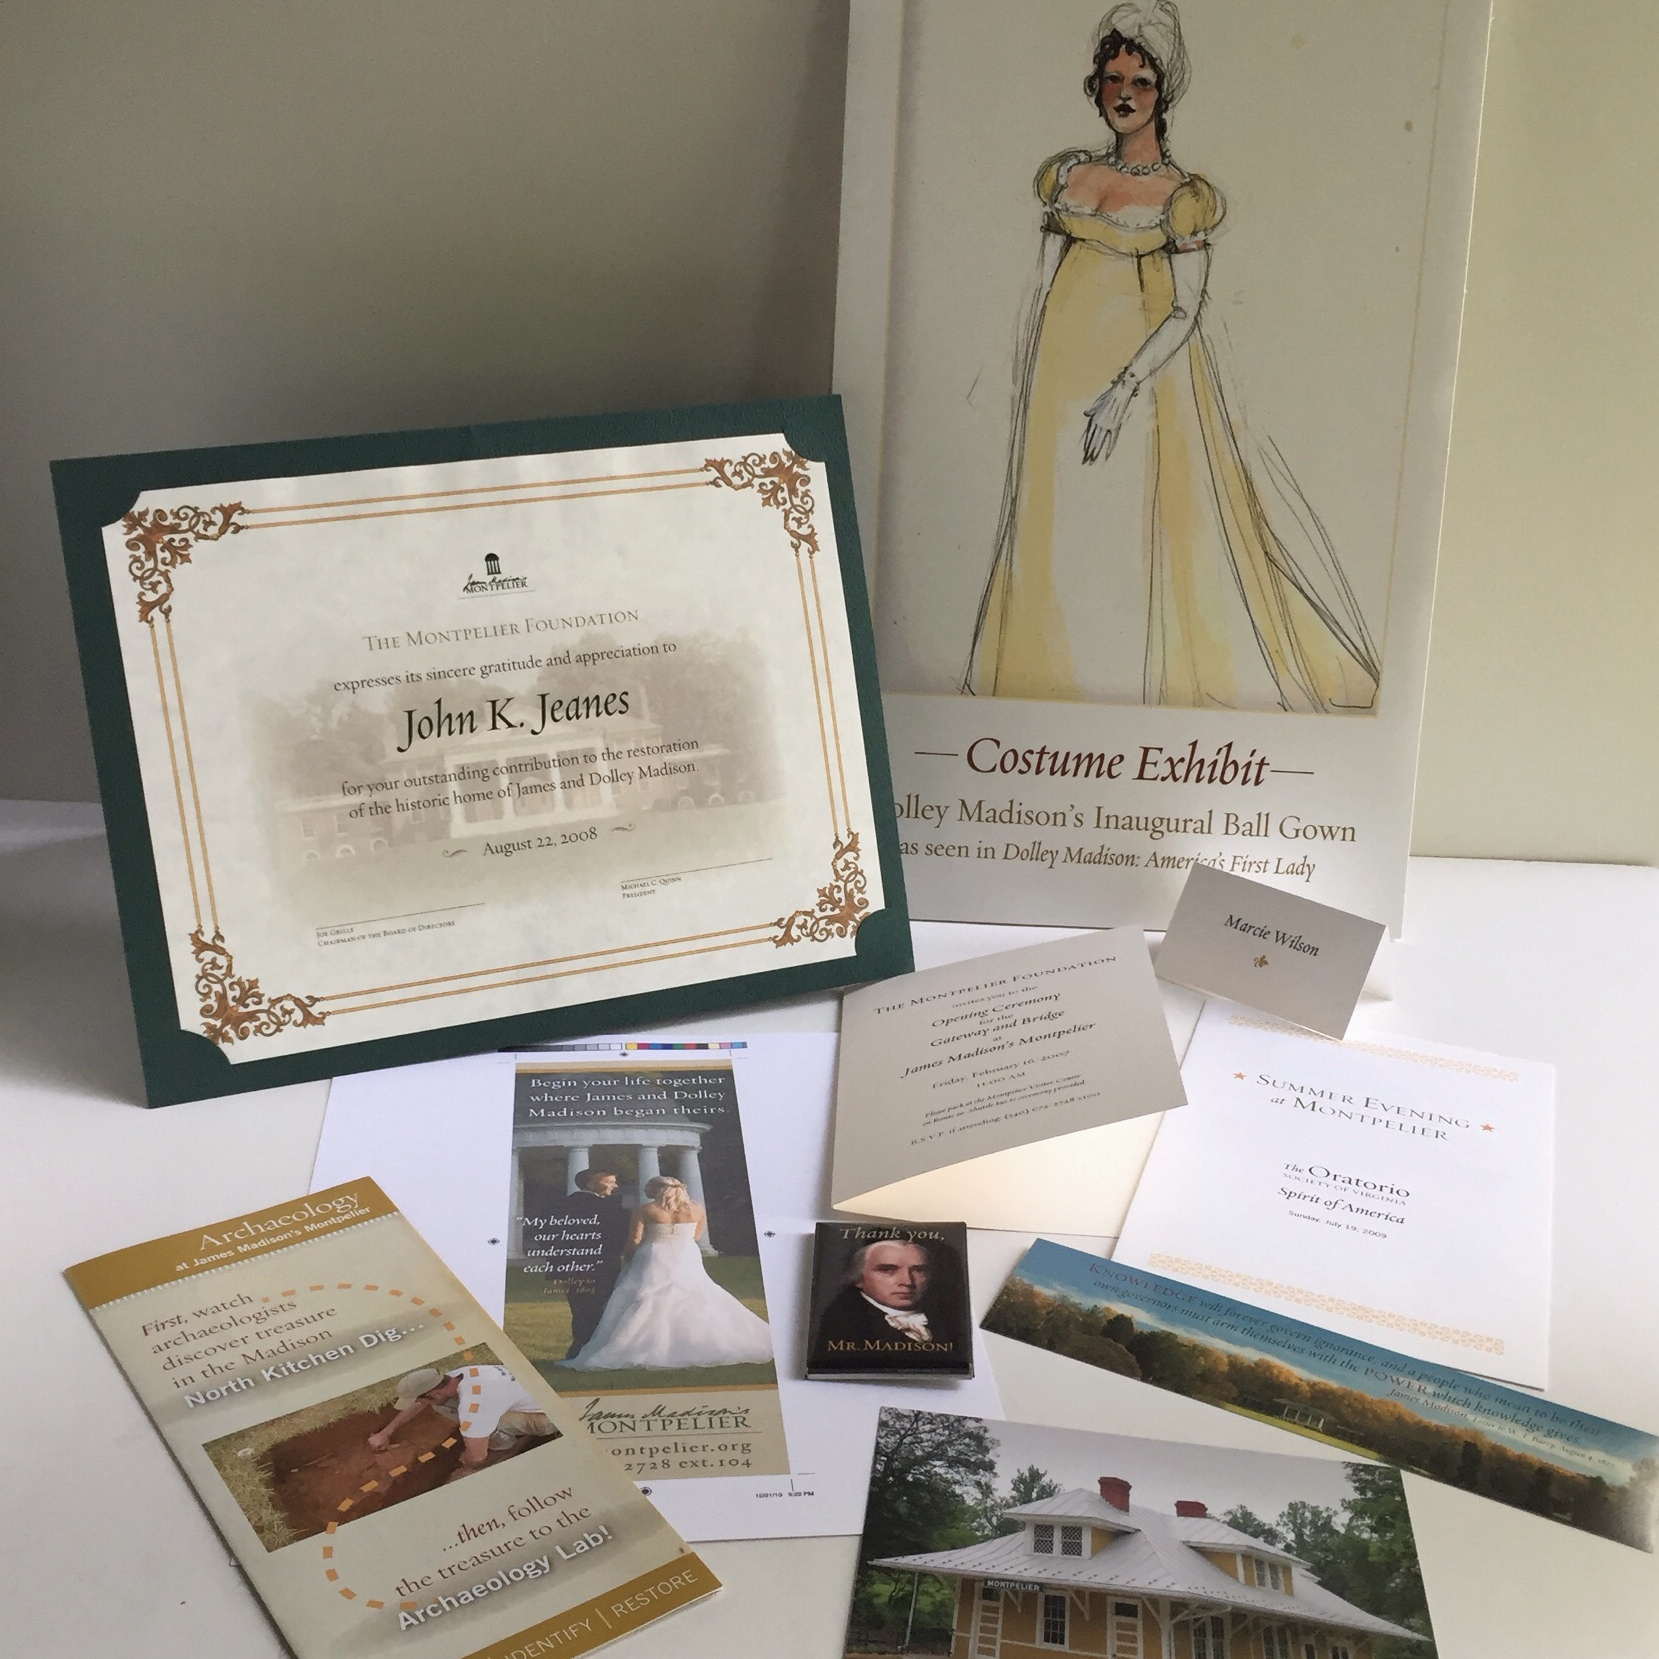 As assistant director of communications at James Madison's Montpelier, I had a chance to design all kinds of fun things! A2Z Design developed a wonderful look-and-feel for our printed collateral, and I carried out that style for all our in-house pieces.